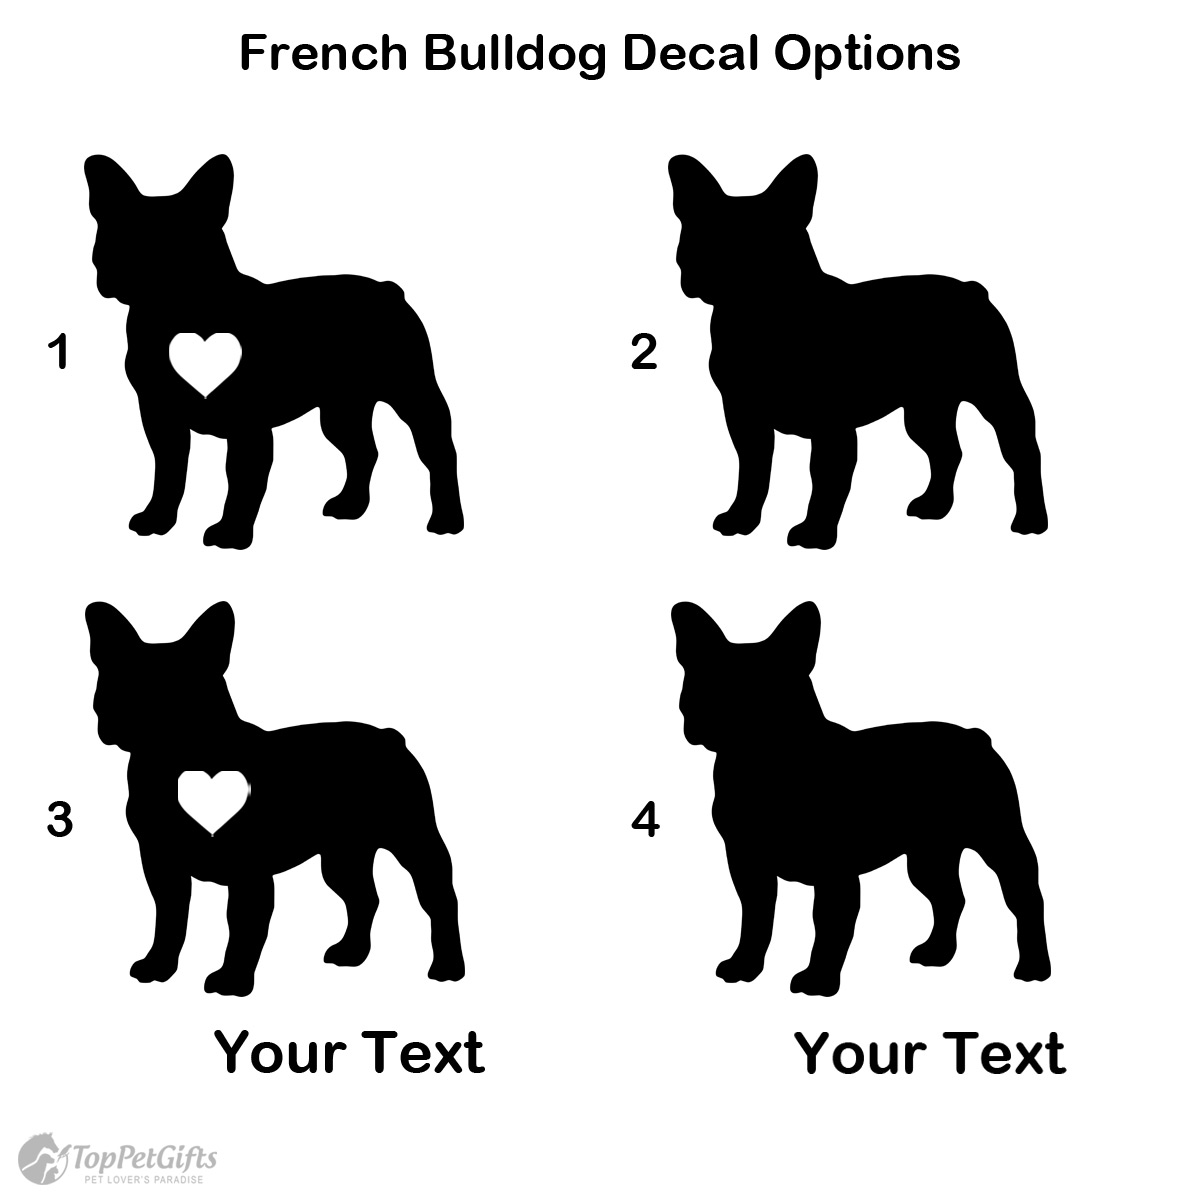 Personalized French Bulldog Decal